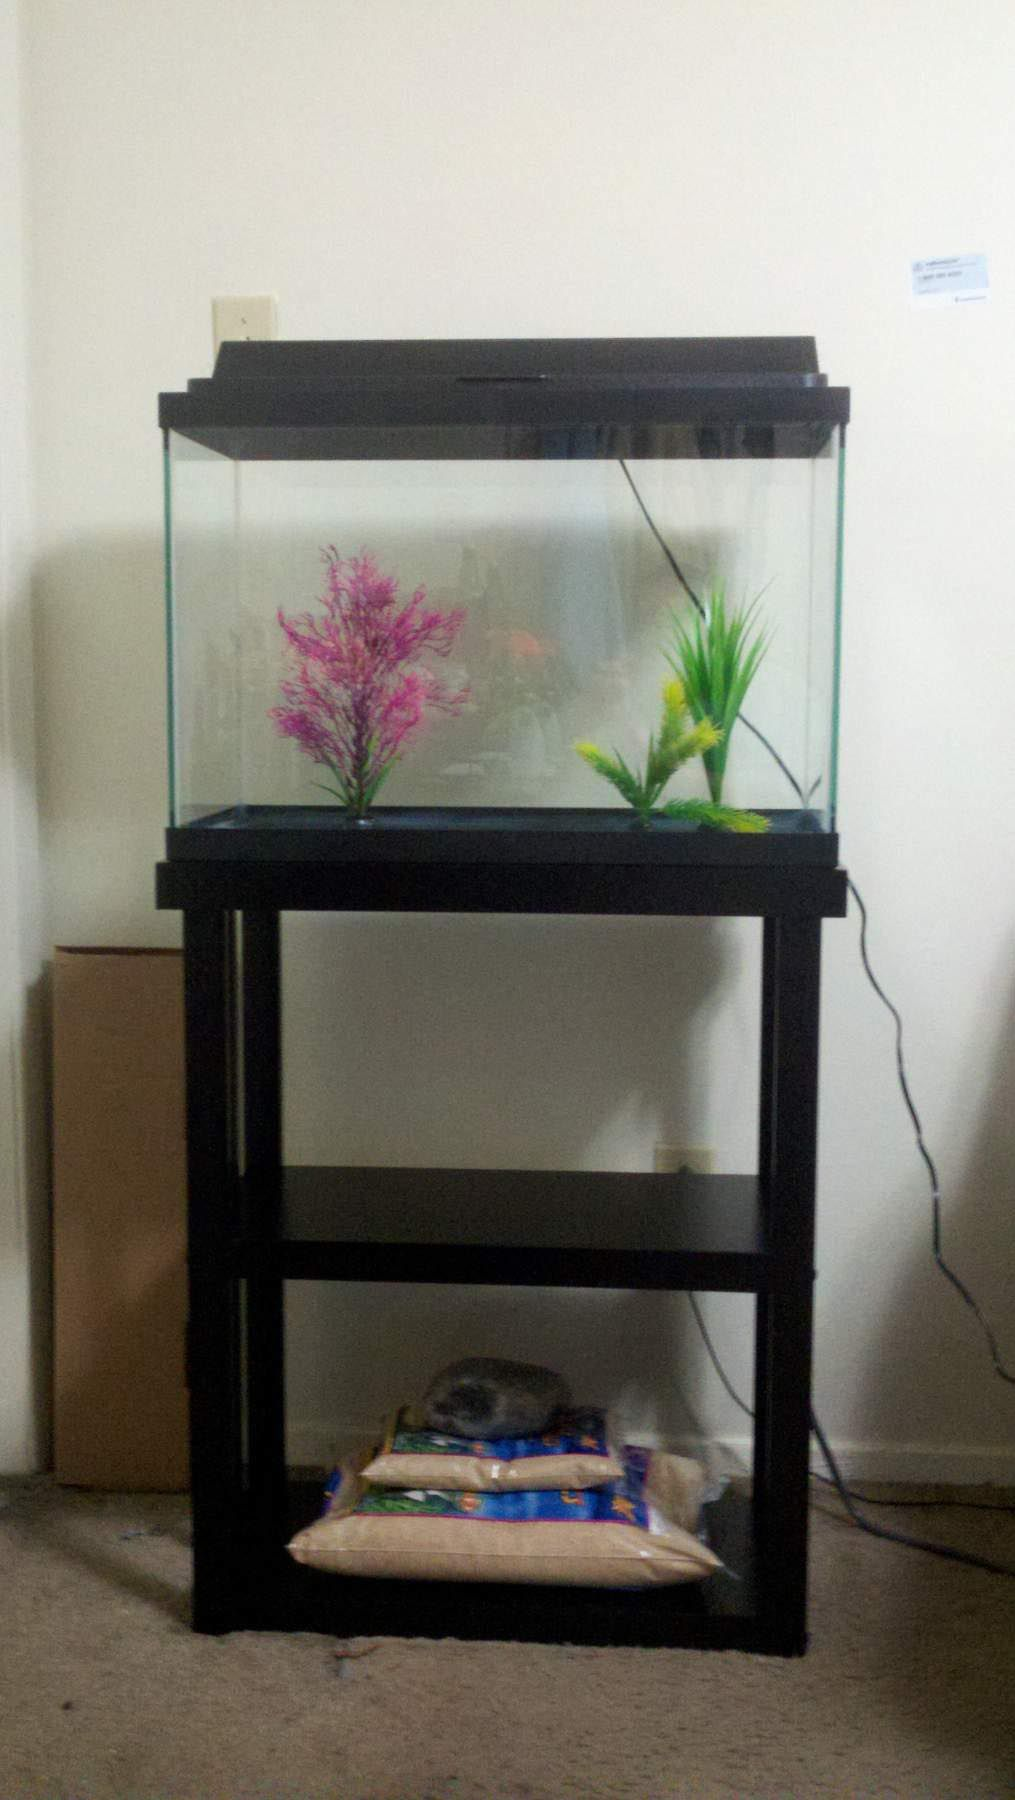 10 Gallon Fish Tank Stand Ideas For Your Aquarium ... 10 Gallon Fish Tank Stand